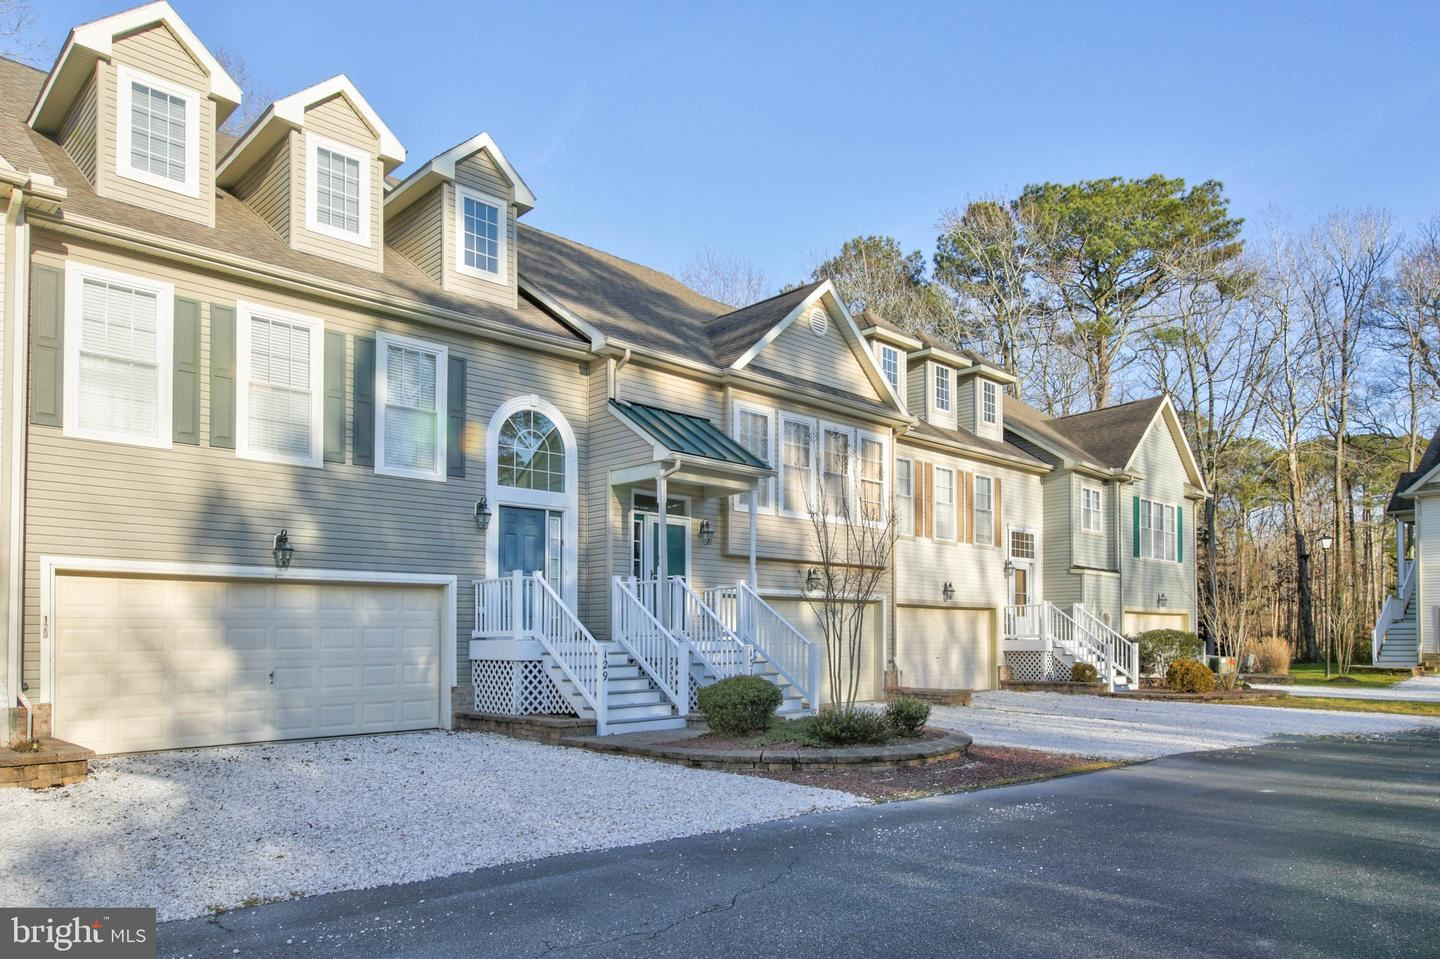 Photo of 129 HINGHAM LN #12, OCEAN PINES, MD 21811 (MLS # MDWO120170)